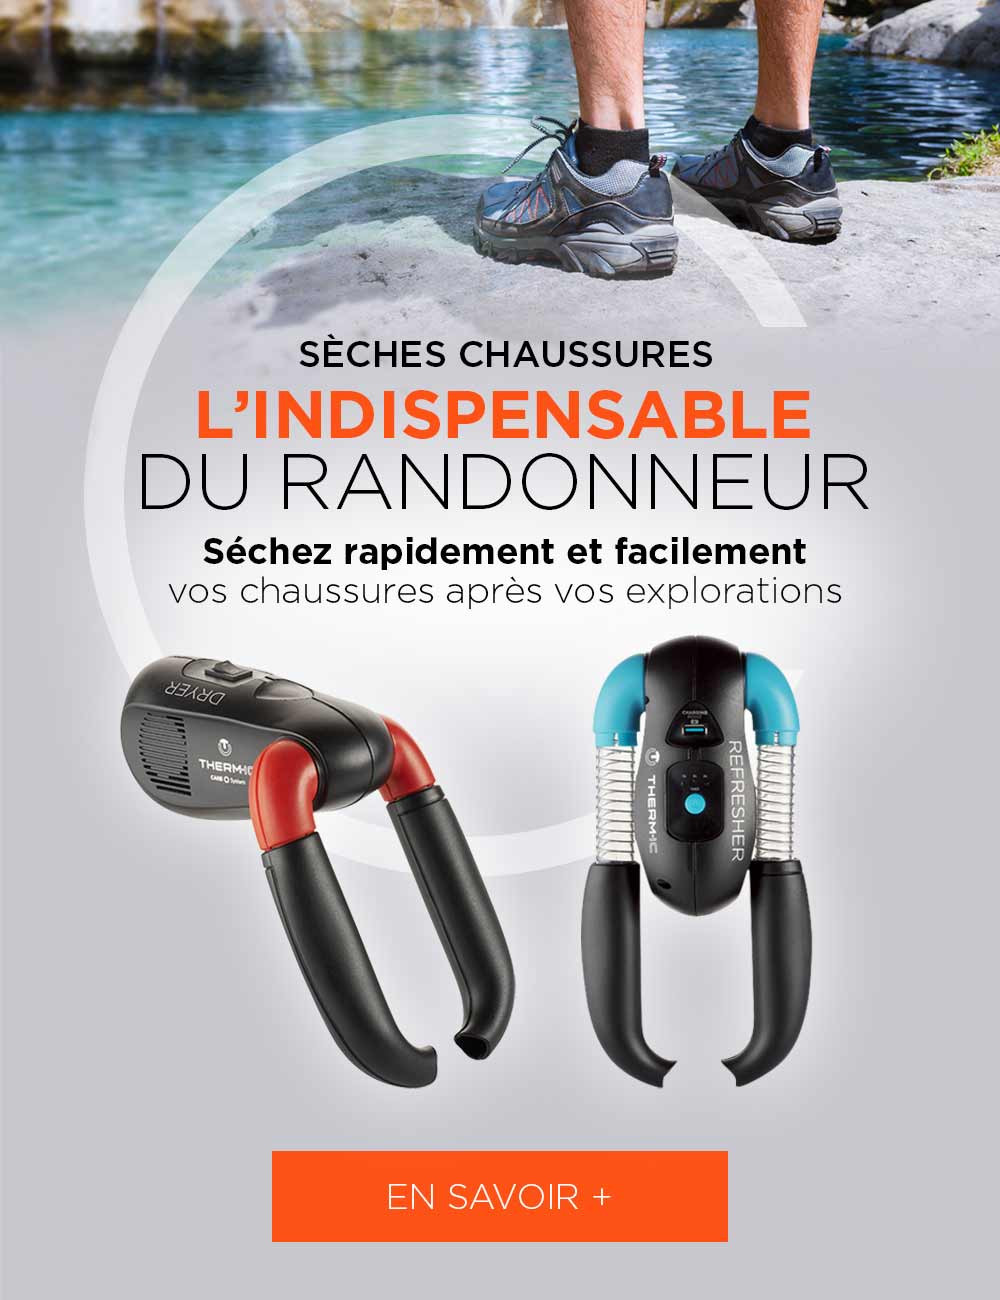 Sèches chaussures Dryer, Refresher